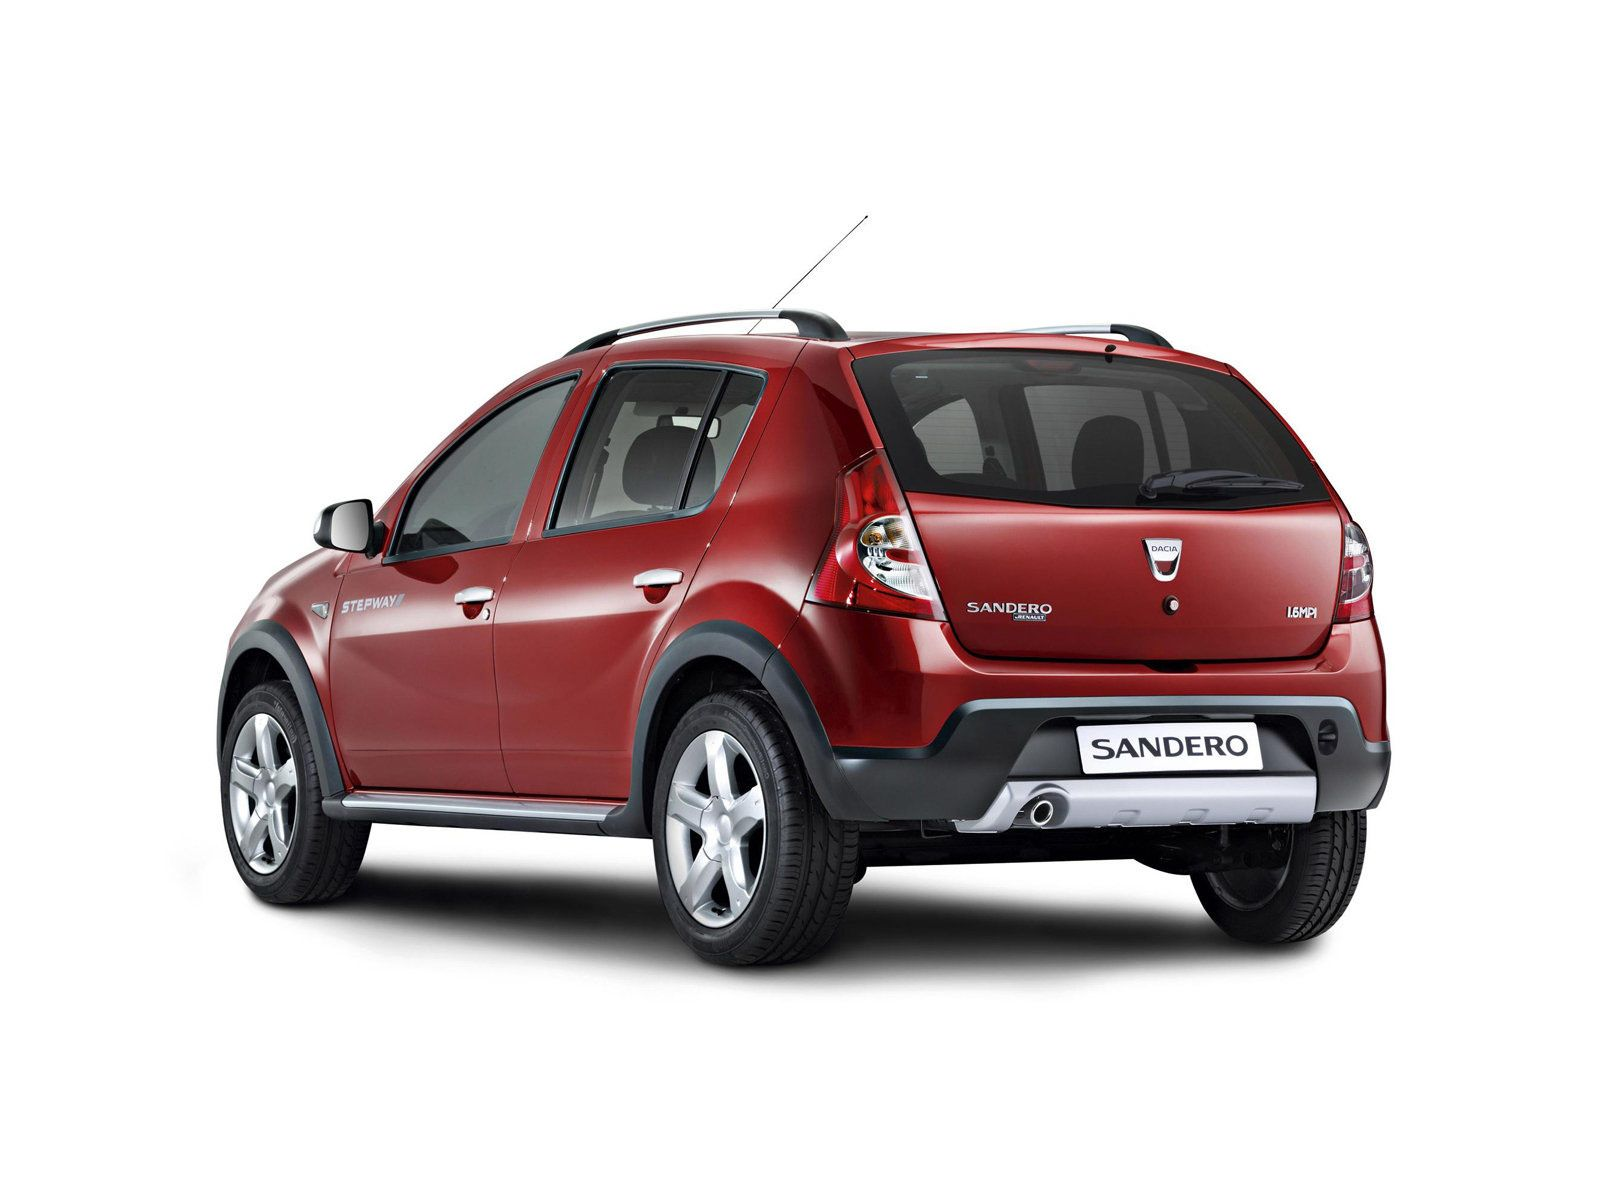 the renault sandero stepway pure class renault sandero stepway dacia sandero cars new. Black Bedroom Furniture Sets. Home Design Ideas